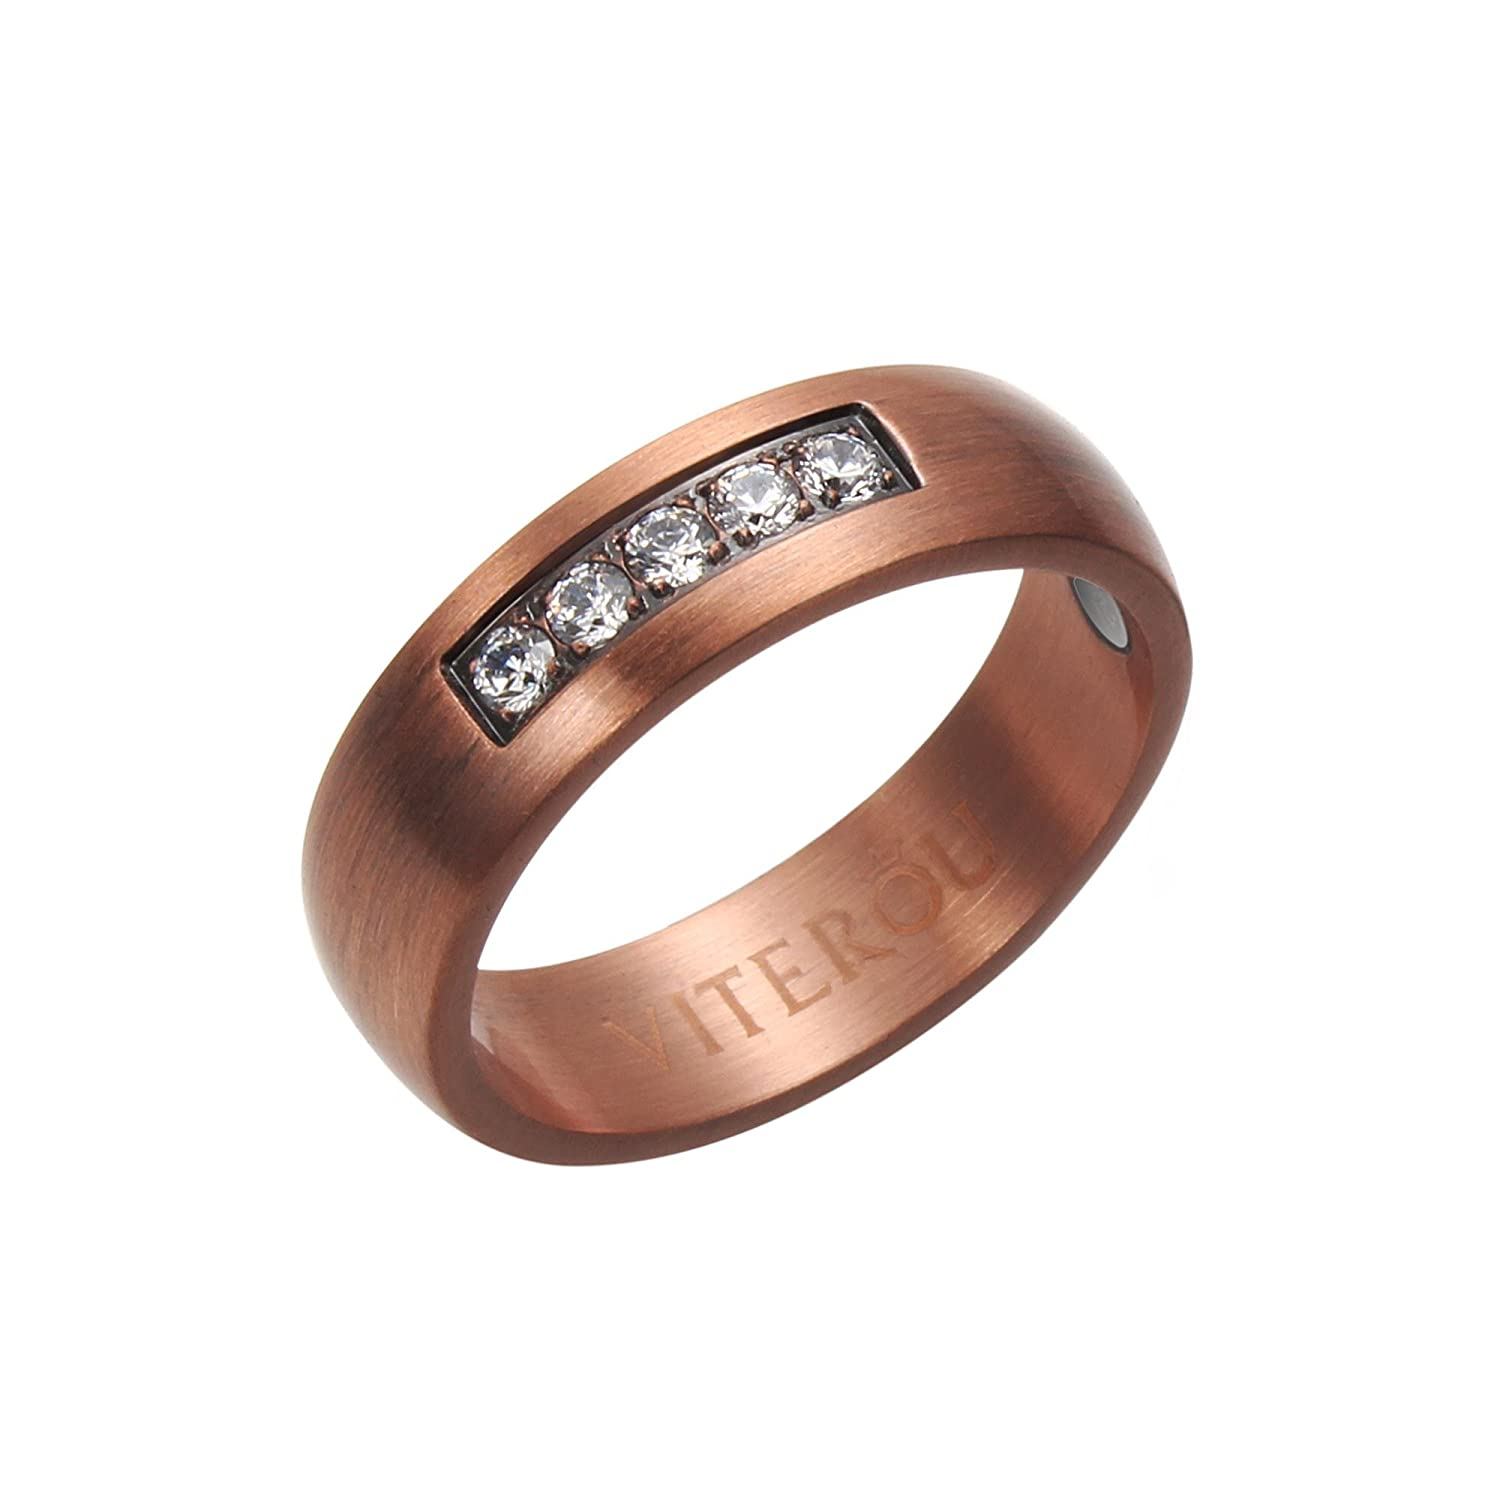 Amazon Viterou 6mm Classic Pure Copper Wedding Engagement Band Ring With 2 Mags For Arthritis Pain Relief Fort Fitsize 613 Jewelry: Thin Wedding Bands For Women Arthritis At Websimilar.org